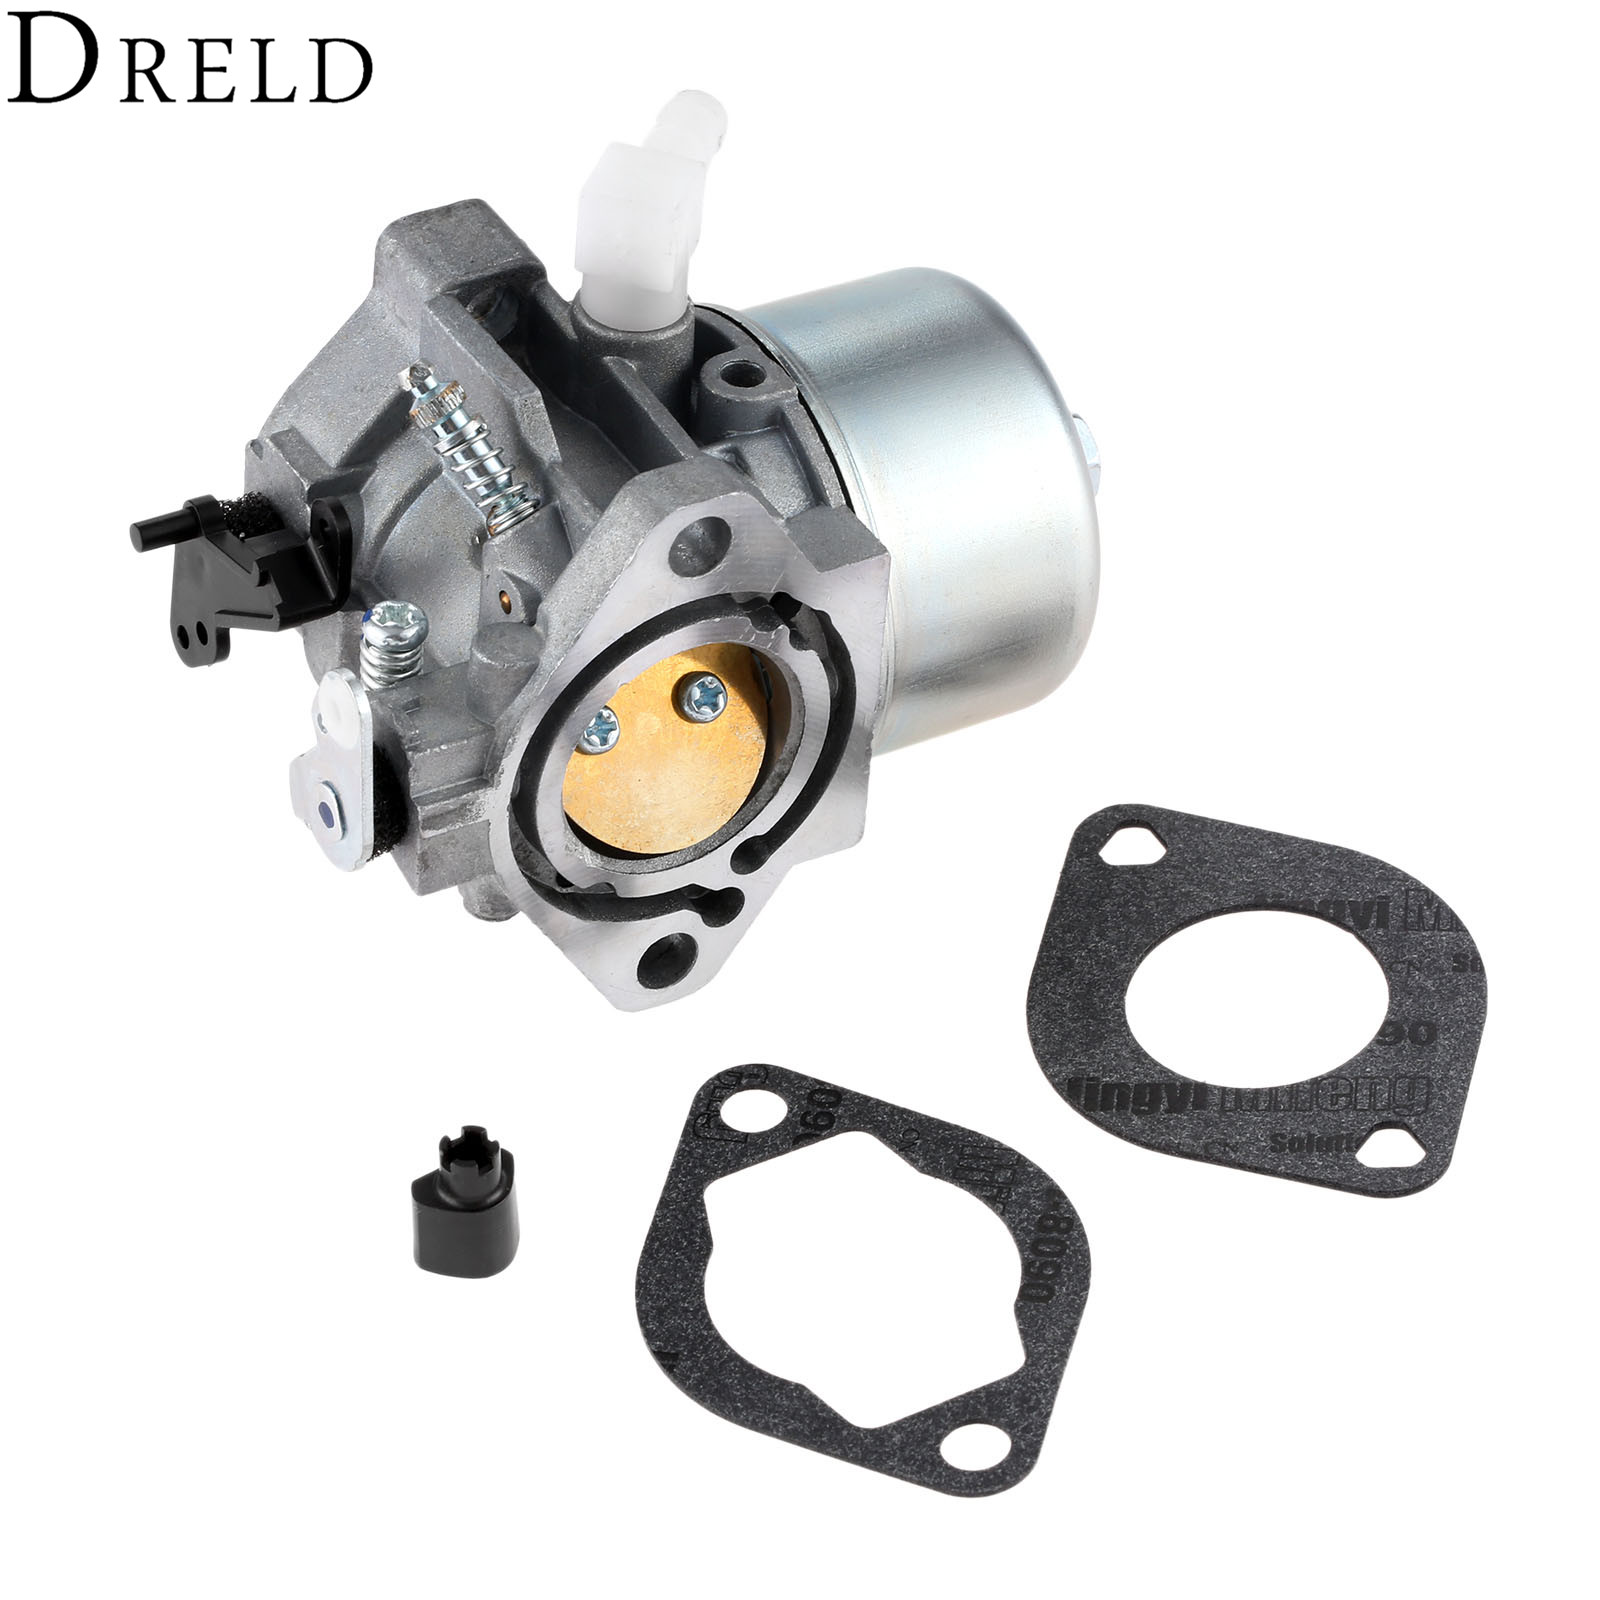 DRELD Replacement Carburetor with 2pcs Carburetor Gasket for Briggs & Stratton 699831 Carb Lawn Mower Garden Power Tools все цены